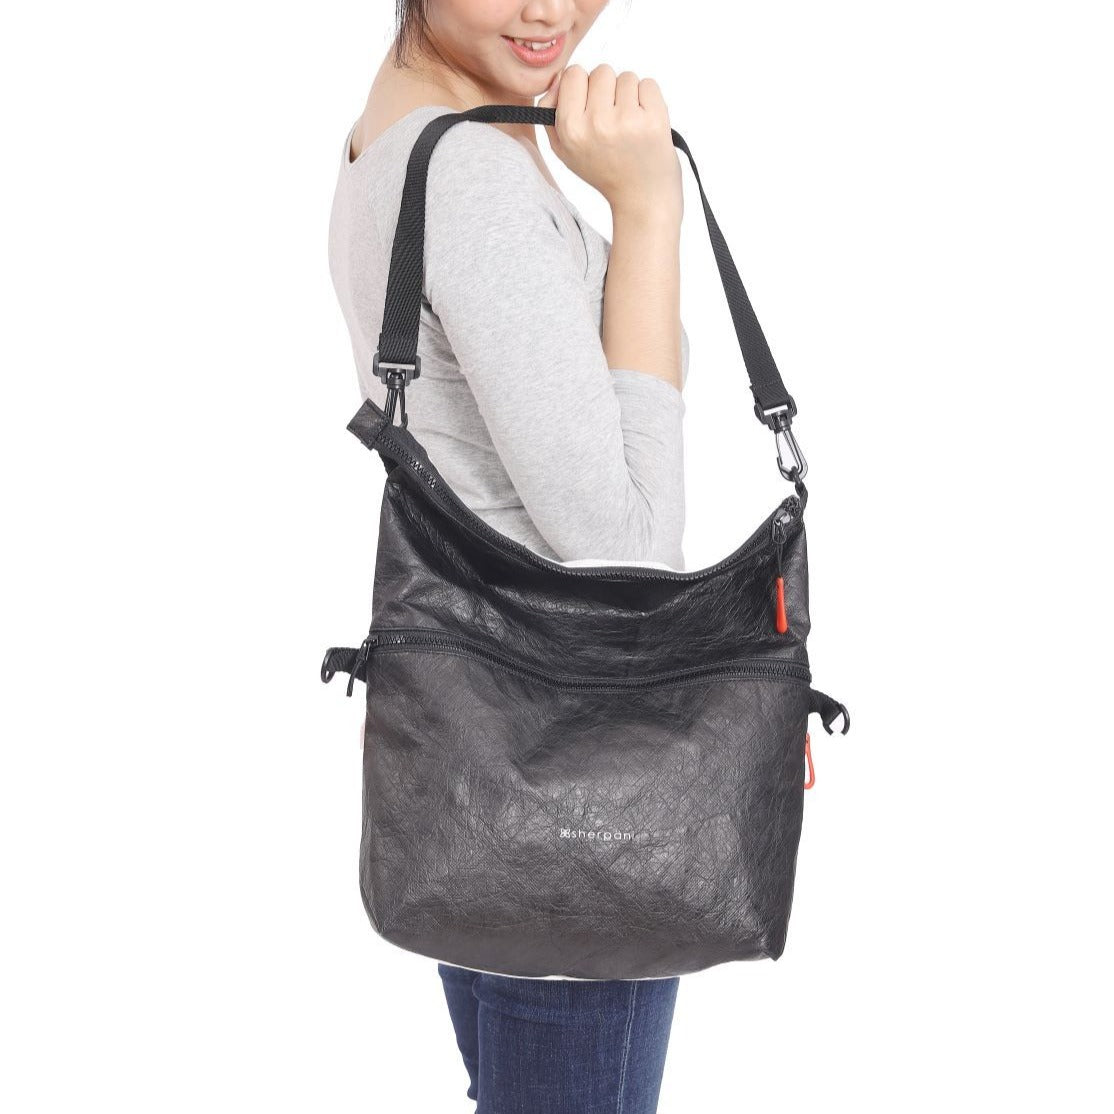 Black & White Reversible Crossbody bag (as shouler bag) made with tyvek fabric